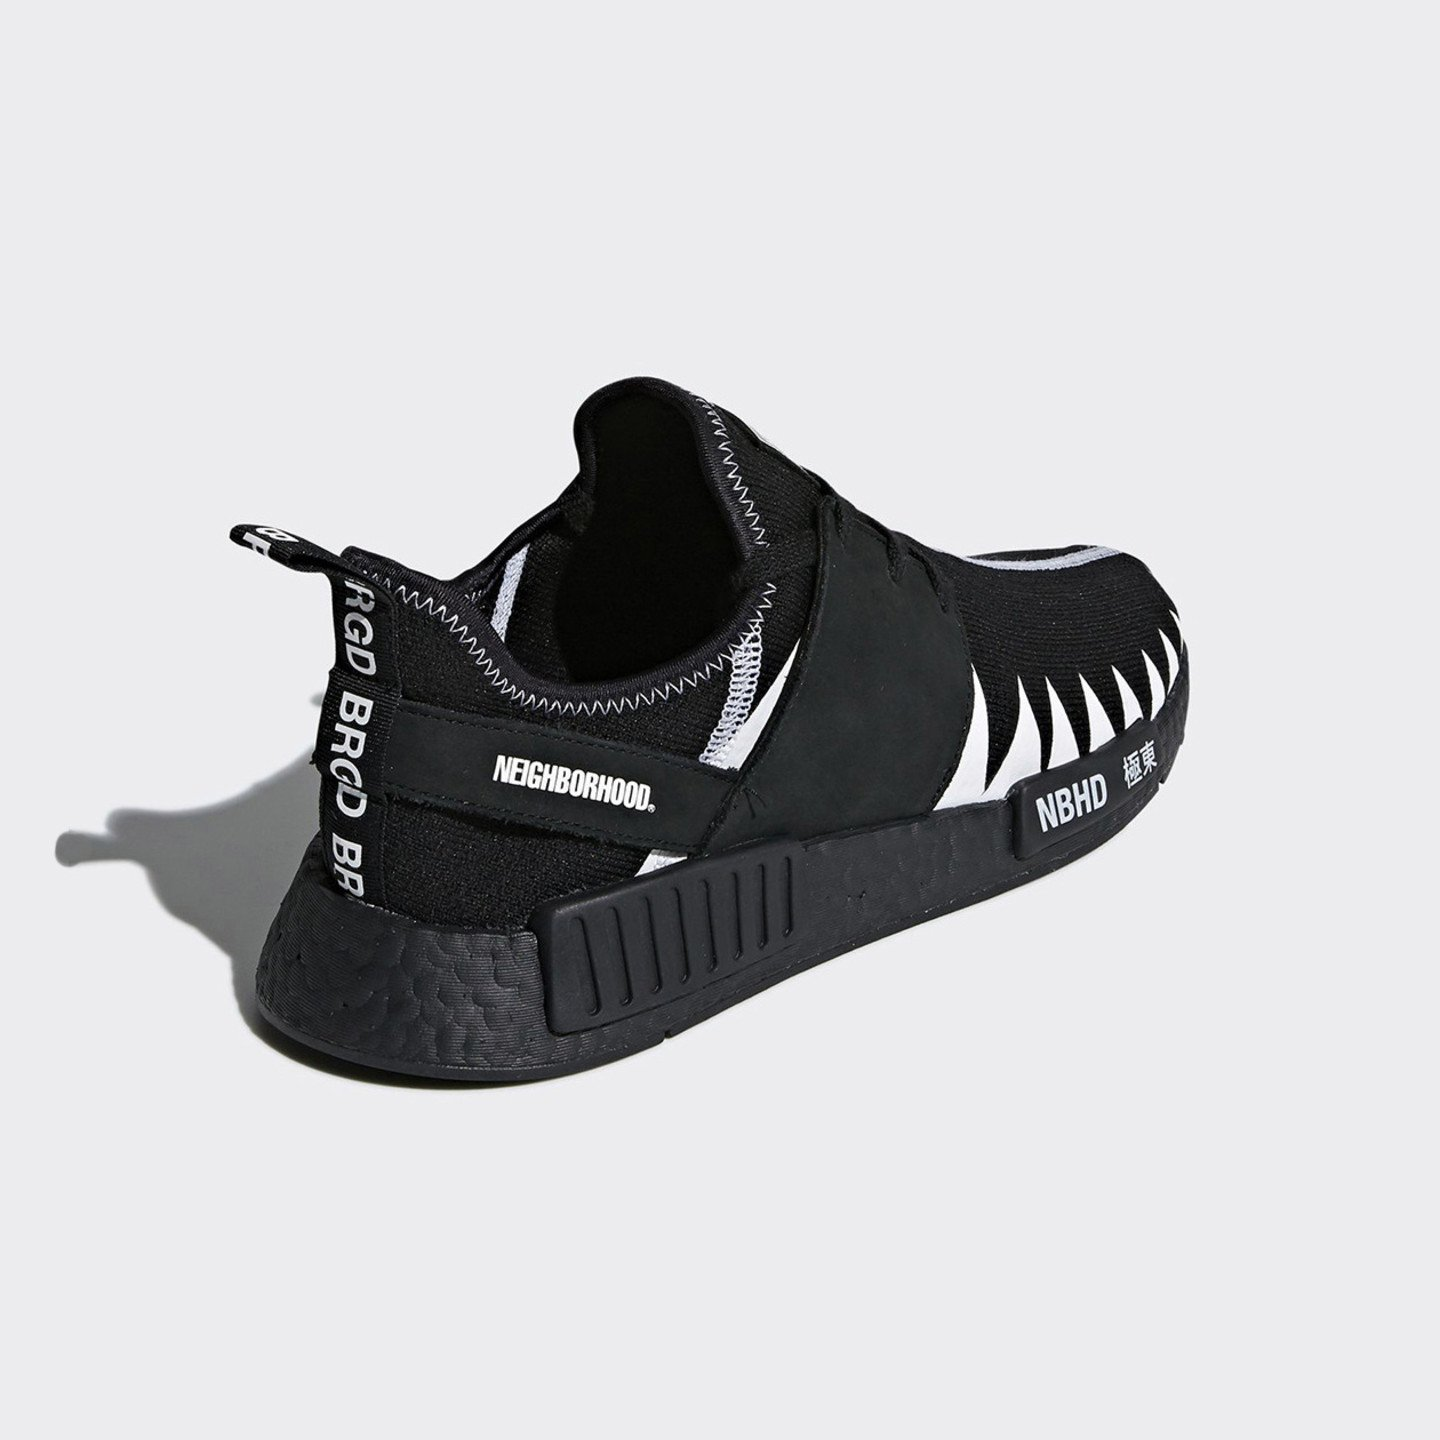 promo code e0e9e 2d58d adidas x Neighborhood NMD R1 PK - Core Black / Ftwr White ...